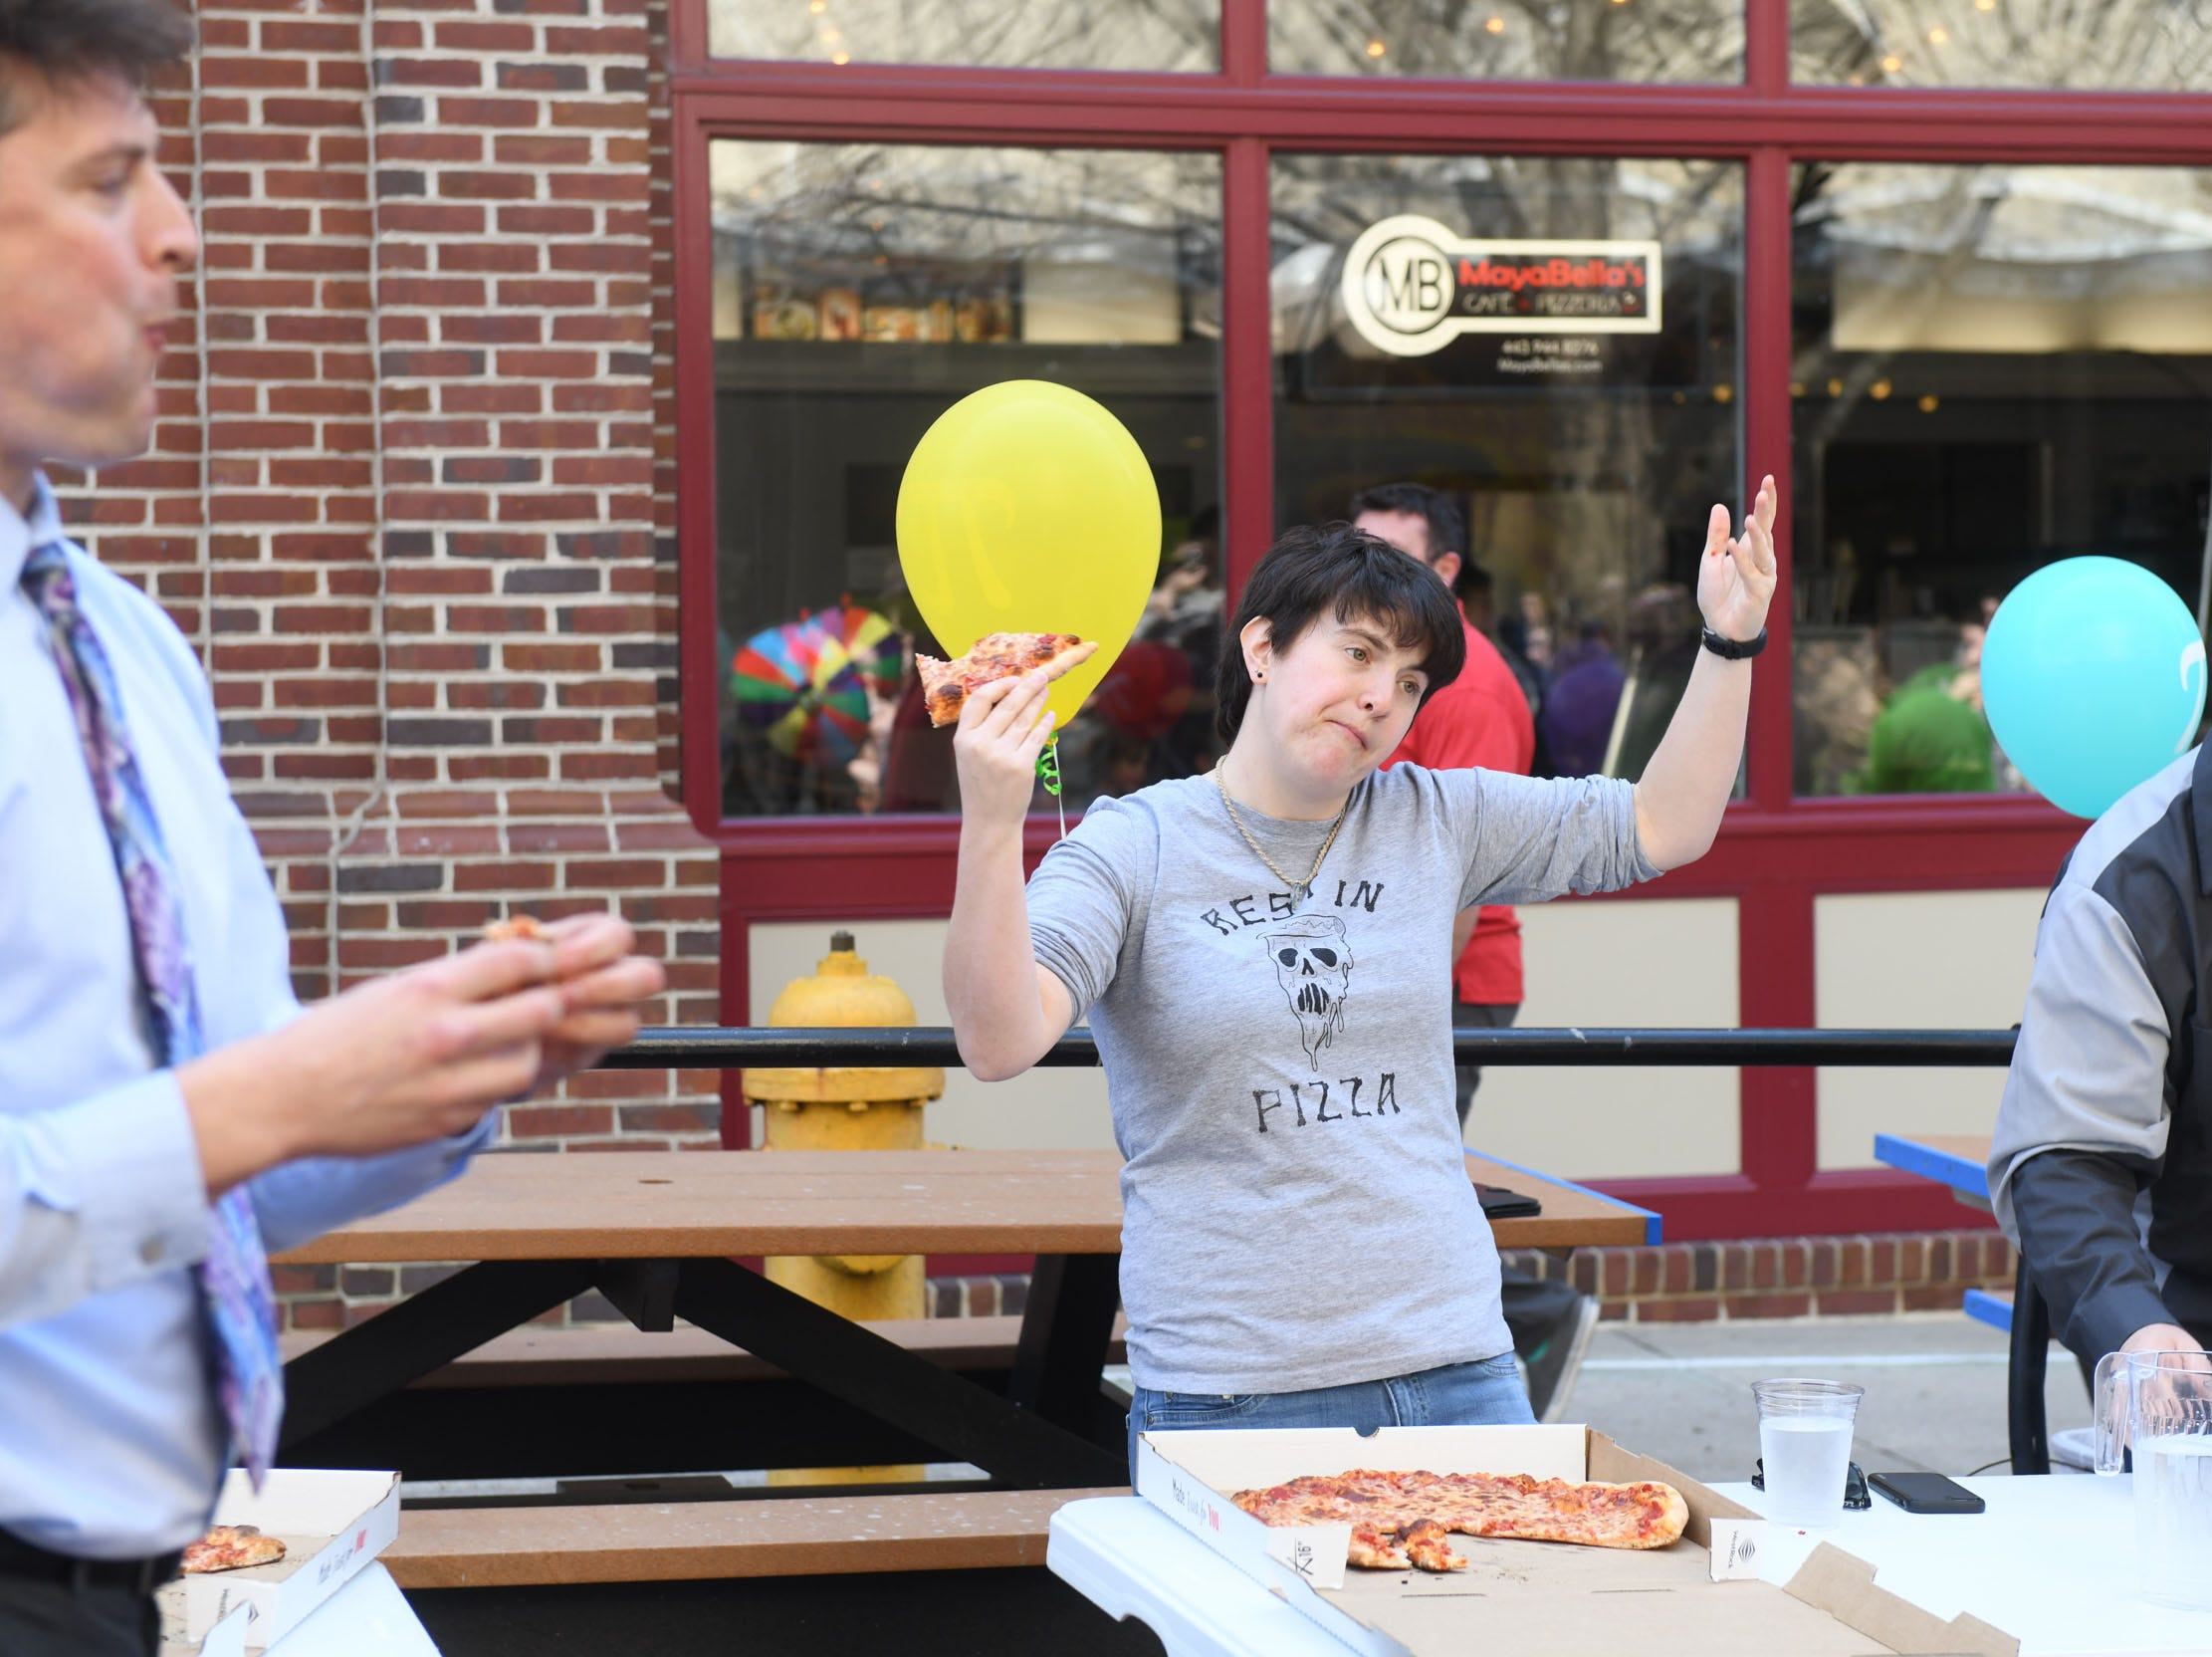 Julie Parson works on eating a 16-inch pie during PI(e) Day in Downtown Salisbury on Thursday, March 14, 2019.